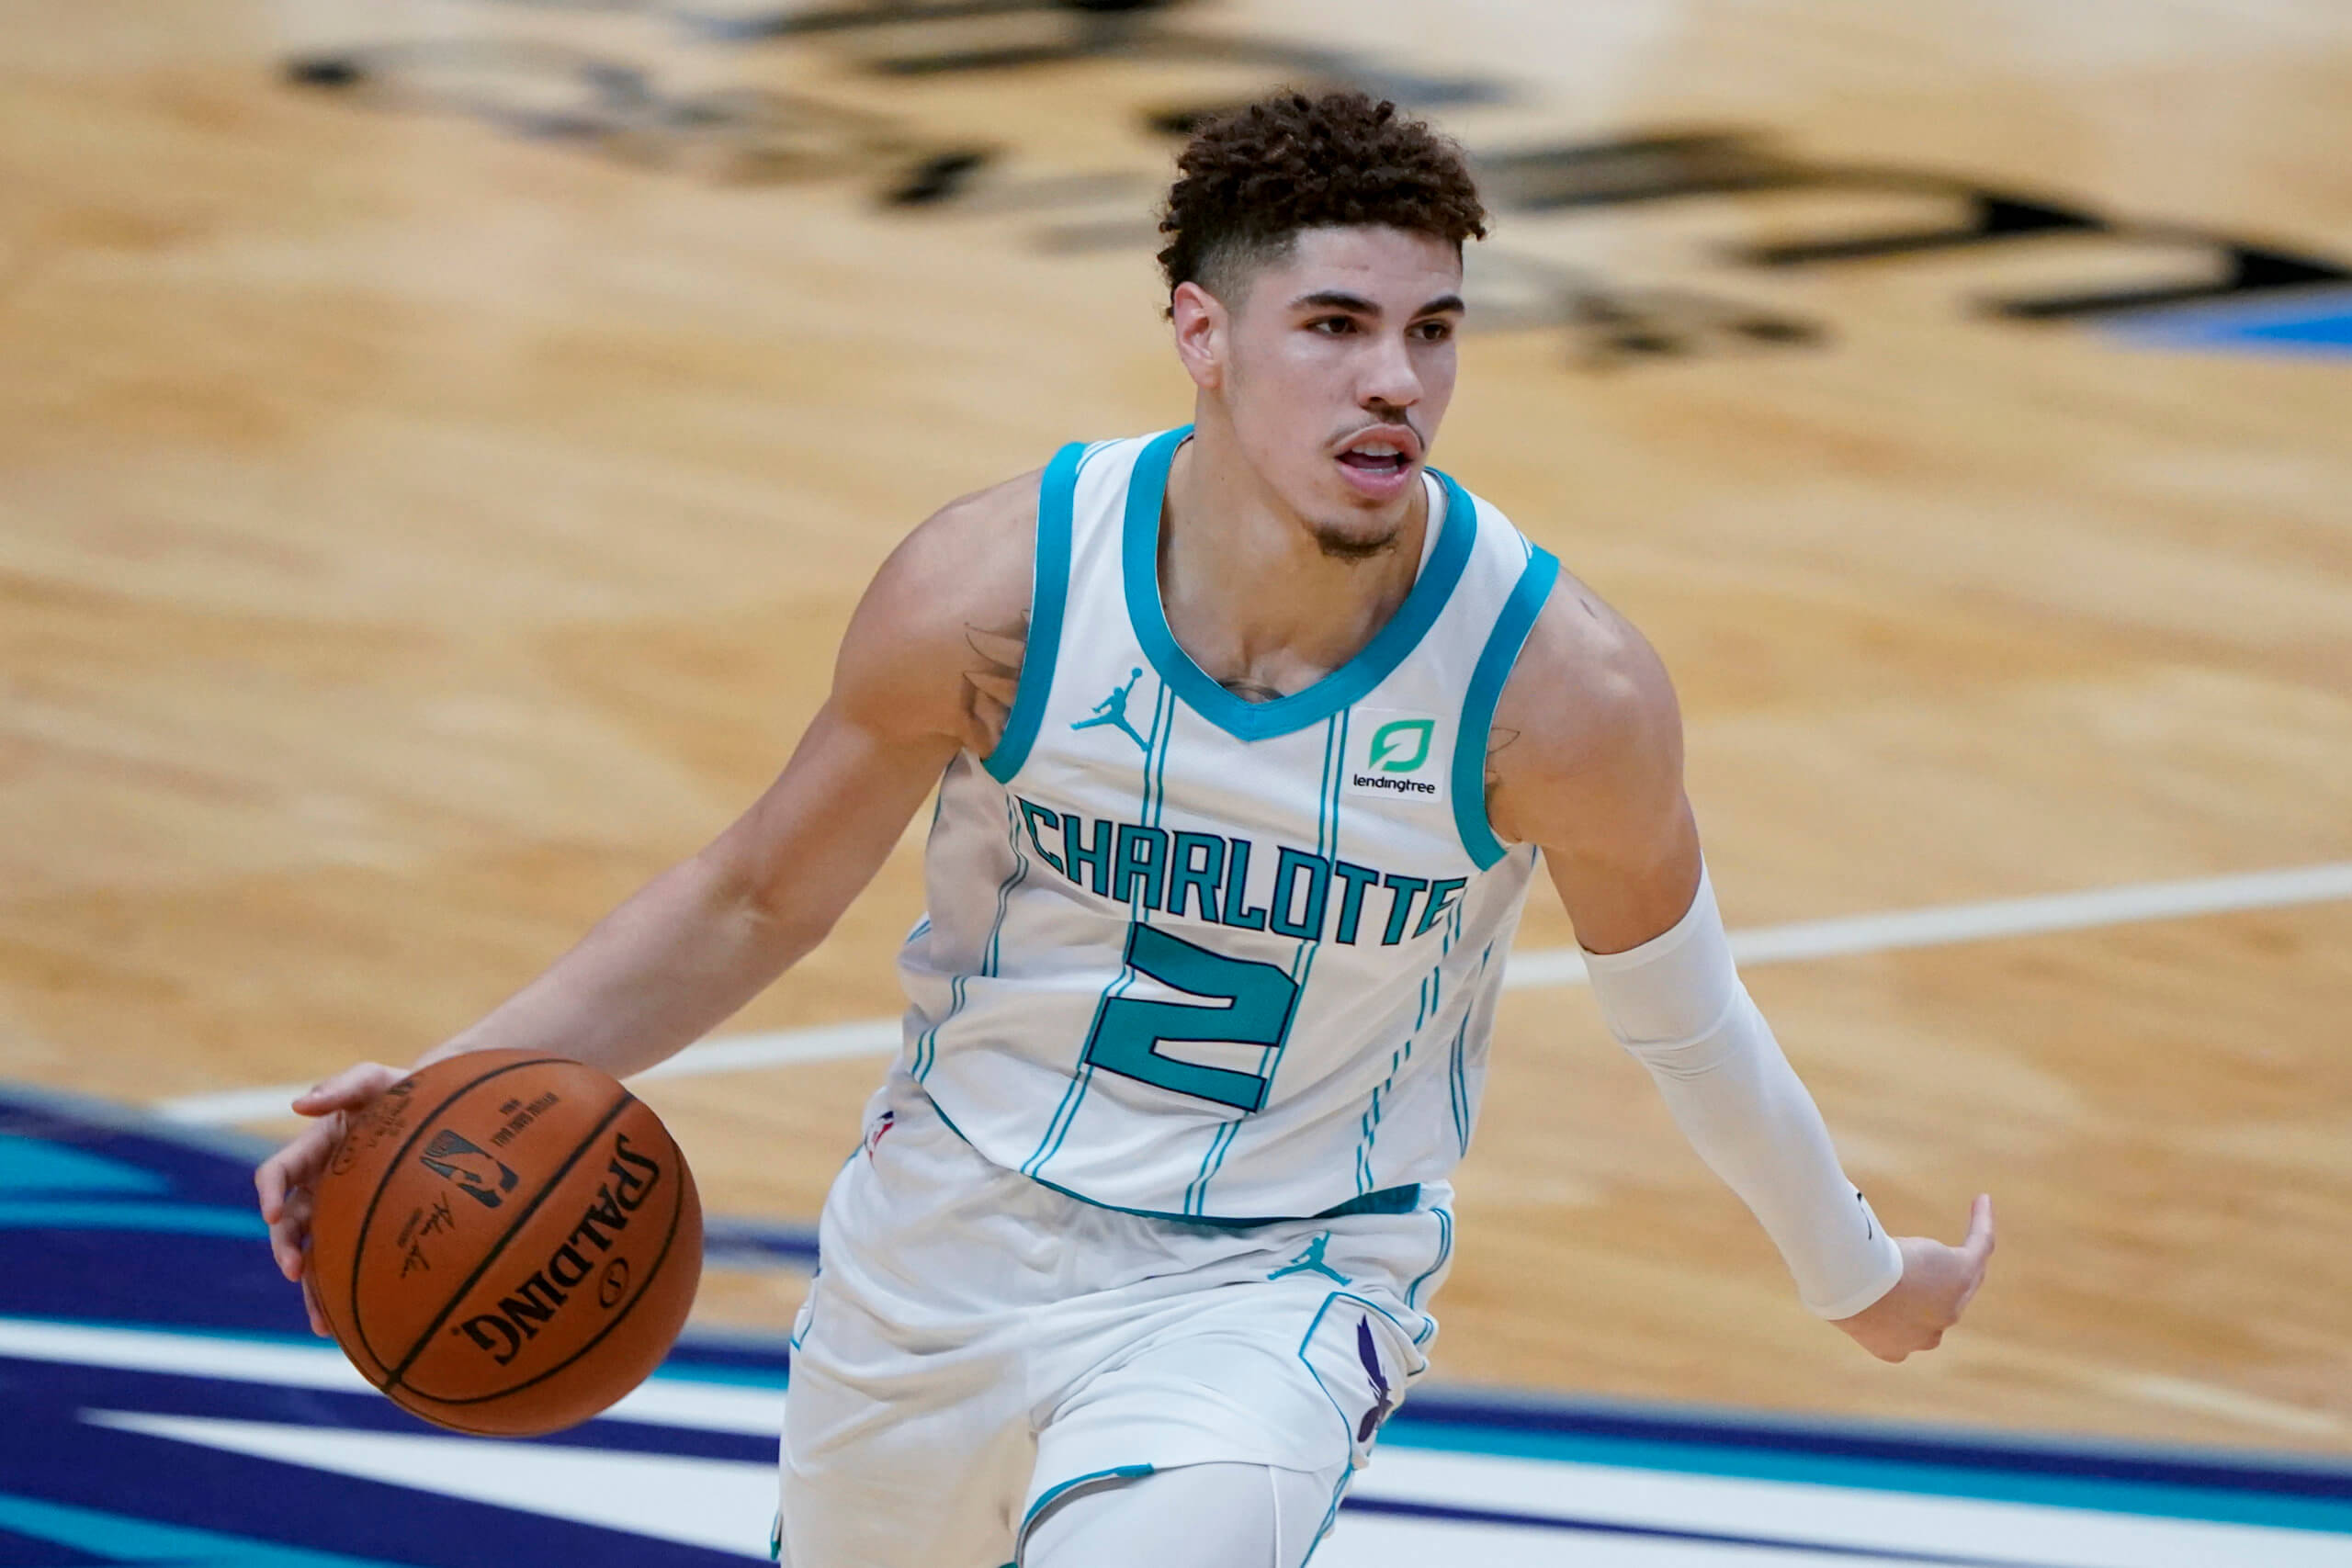 The Lamelo Ball Effect Can Charlotte S Bright New Young Star Change The Course Of The Hornets Franchise Clture